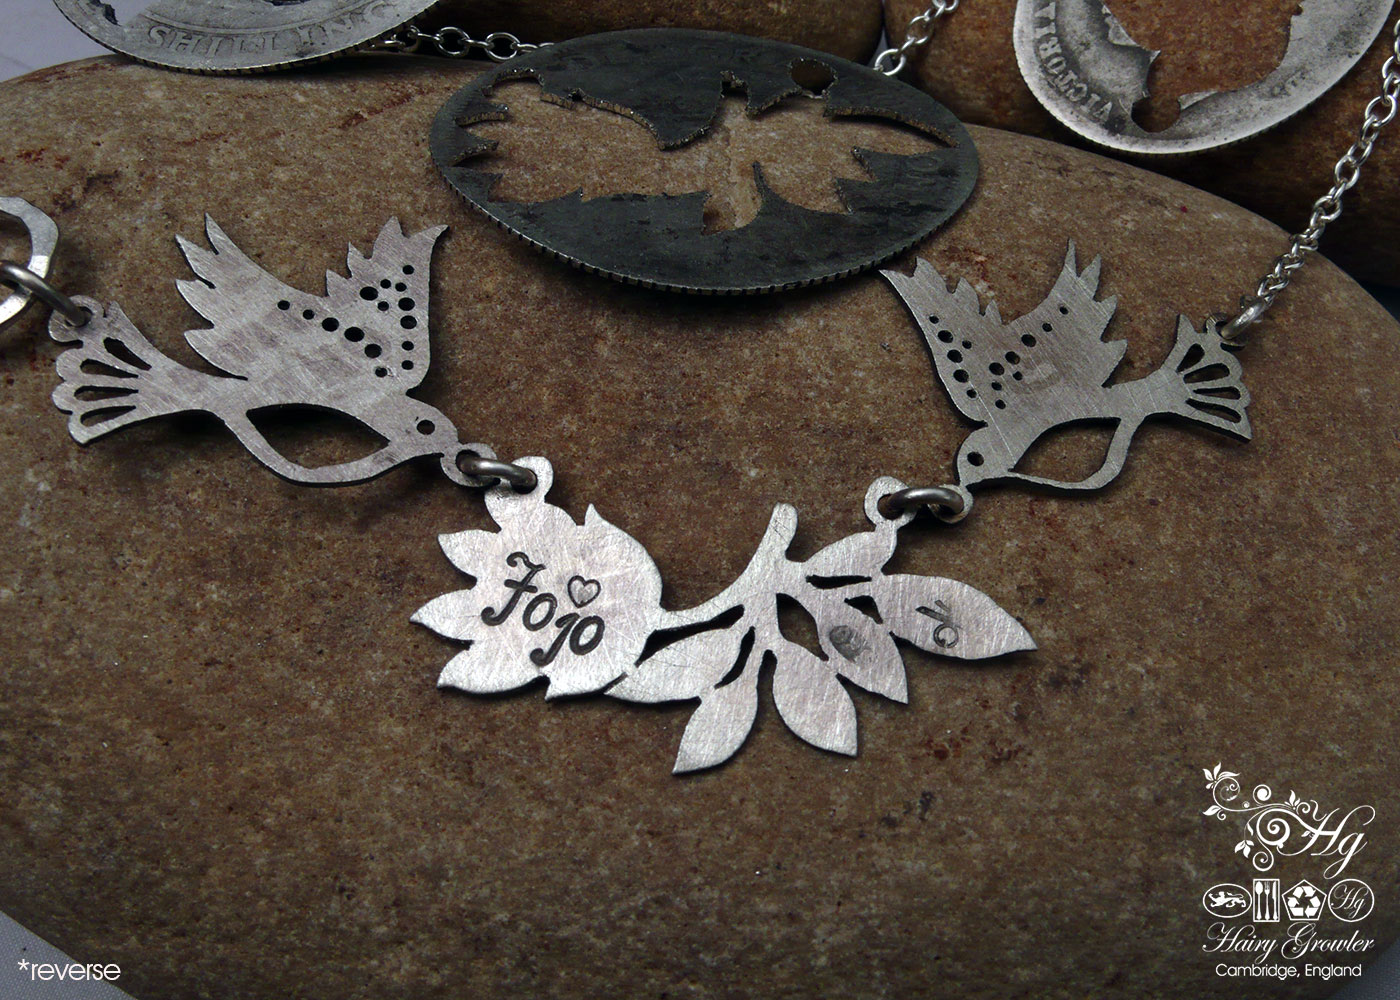 Handcrafted and recycled sterling silver beautiful sparkling doves and lotus flower necklace made from silver shillings